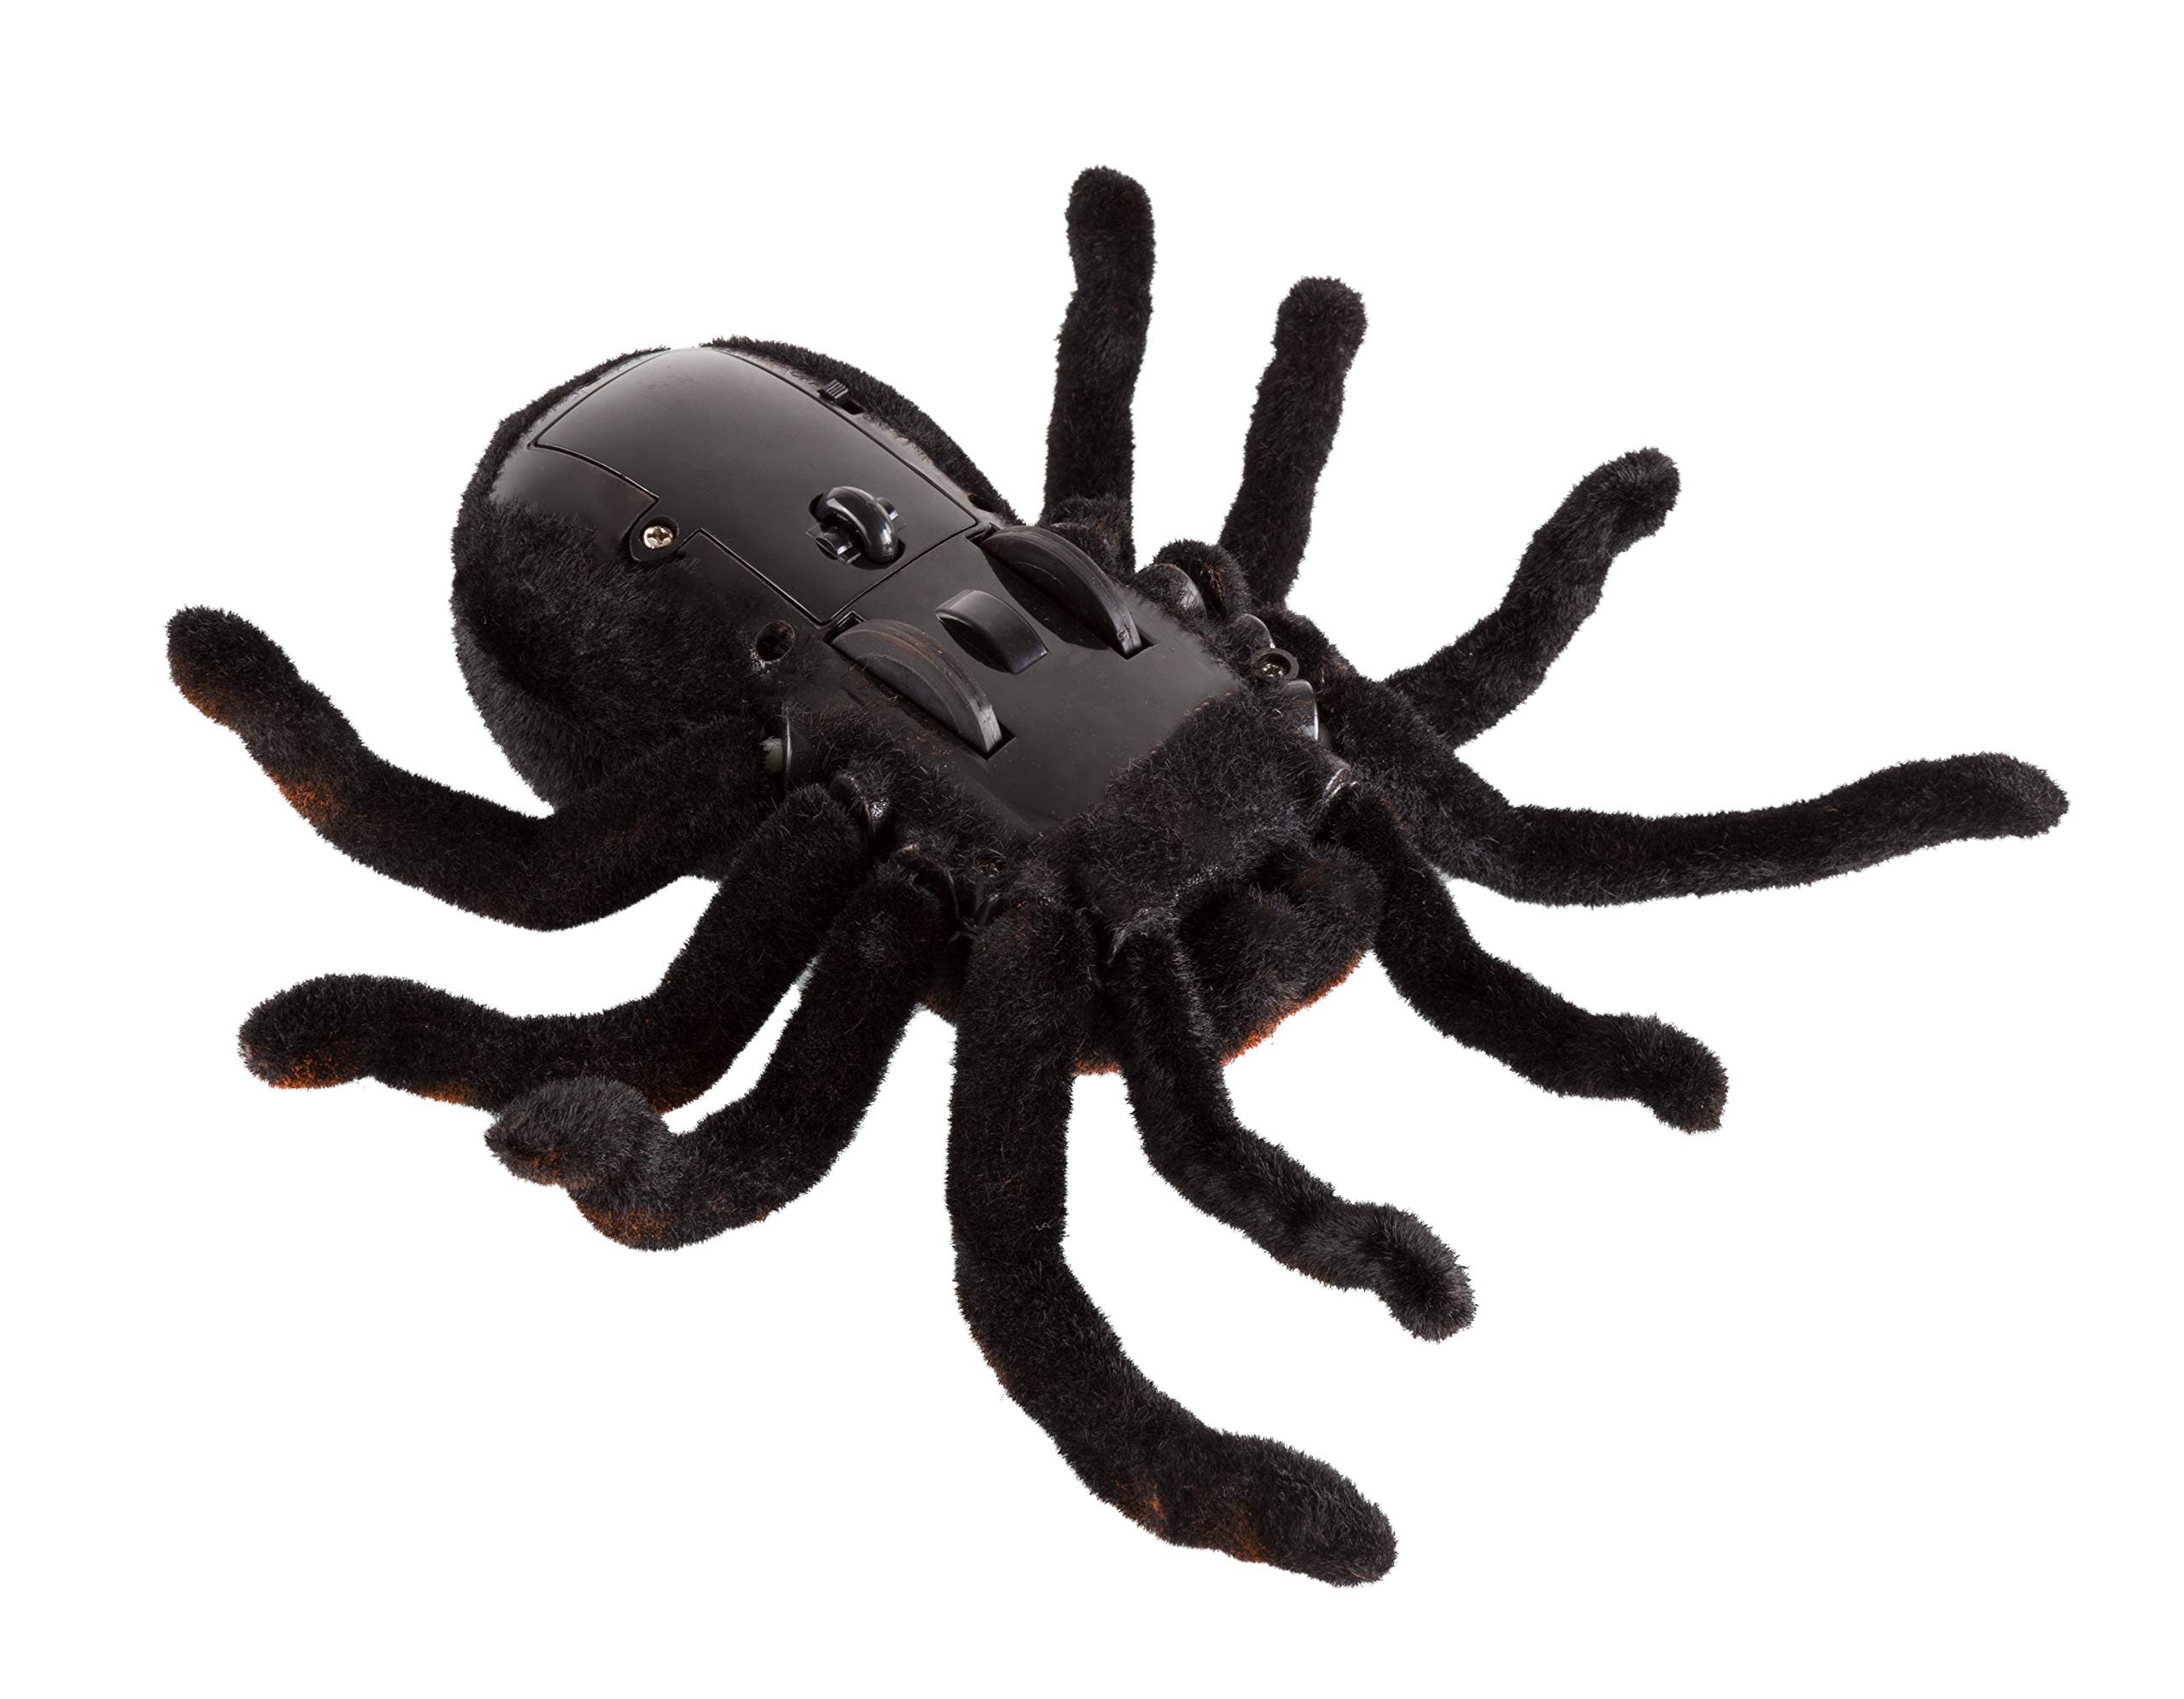 Advanced Play Remote Control Spider Toy Realistic 8 Inch Tarantula Animal Figures Funny Prank Joke Scare Gag Gifts for Halloween Christmas Party decor Birthdays Holidays April Fool Pranks by Advanced Play (Image #4)